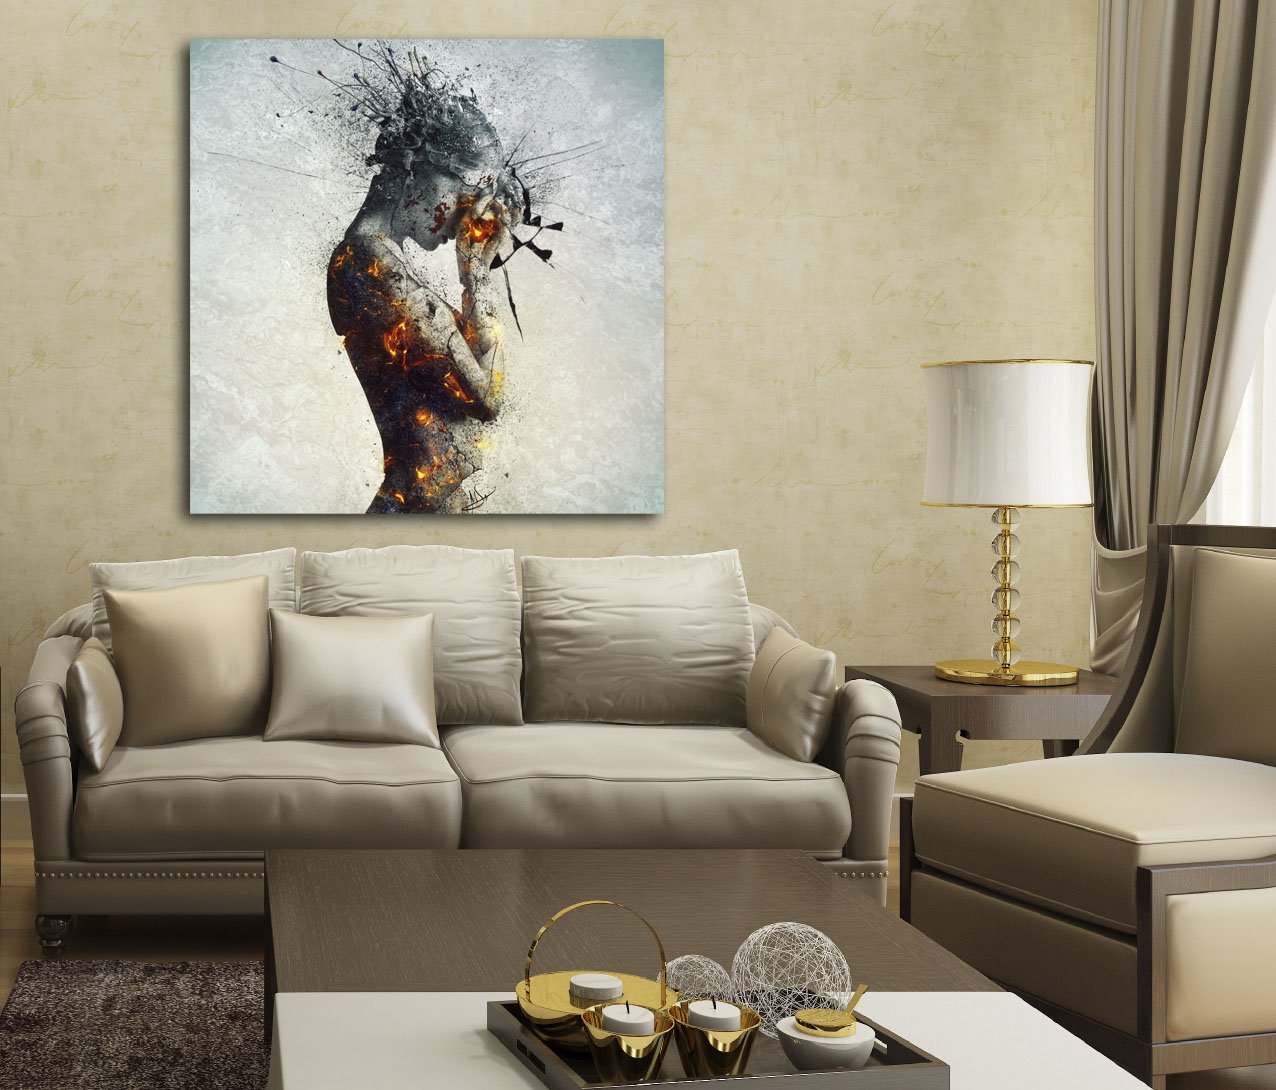 Cortesi Home ''Deliberation'' by Mario Sanchez Nevado Giclee Canvas Wall Art, 28 by 28-Inch by Cortesi Home (Image #2)